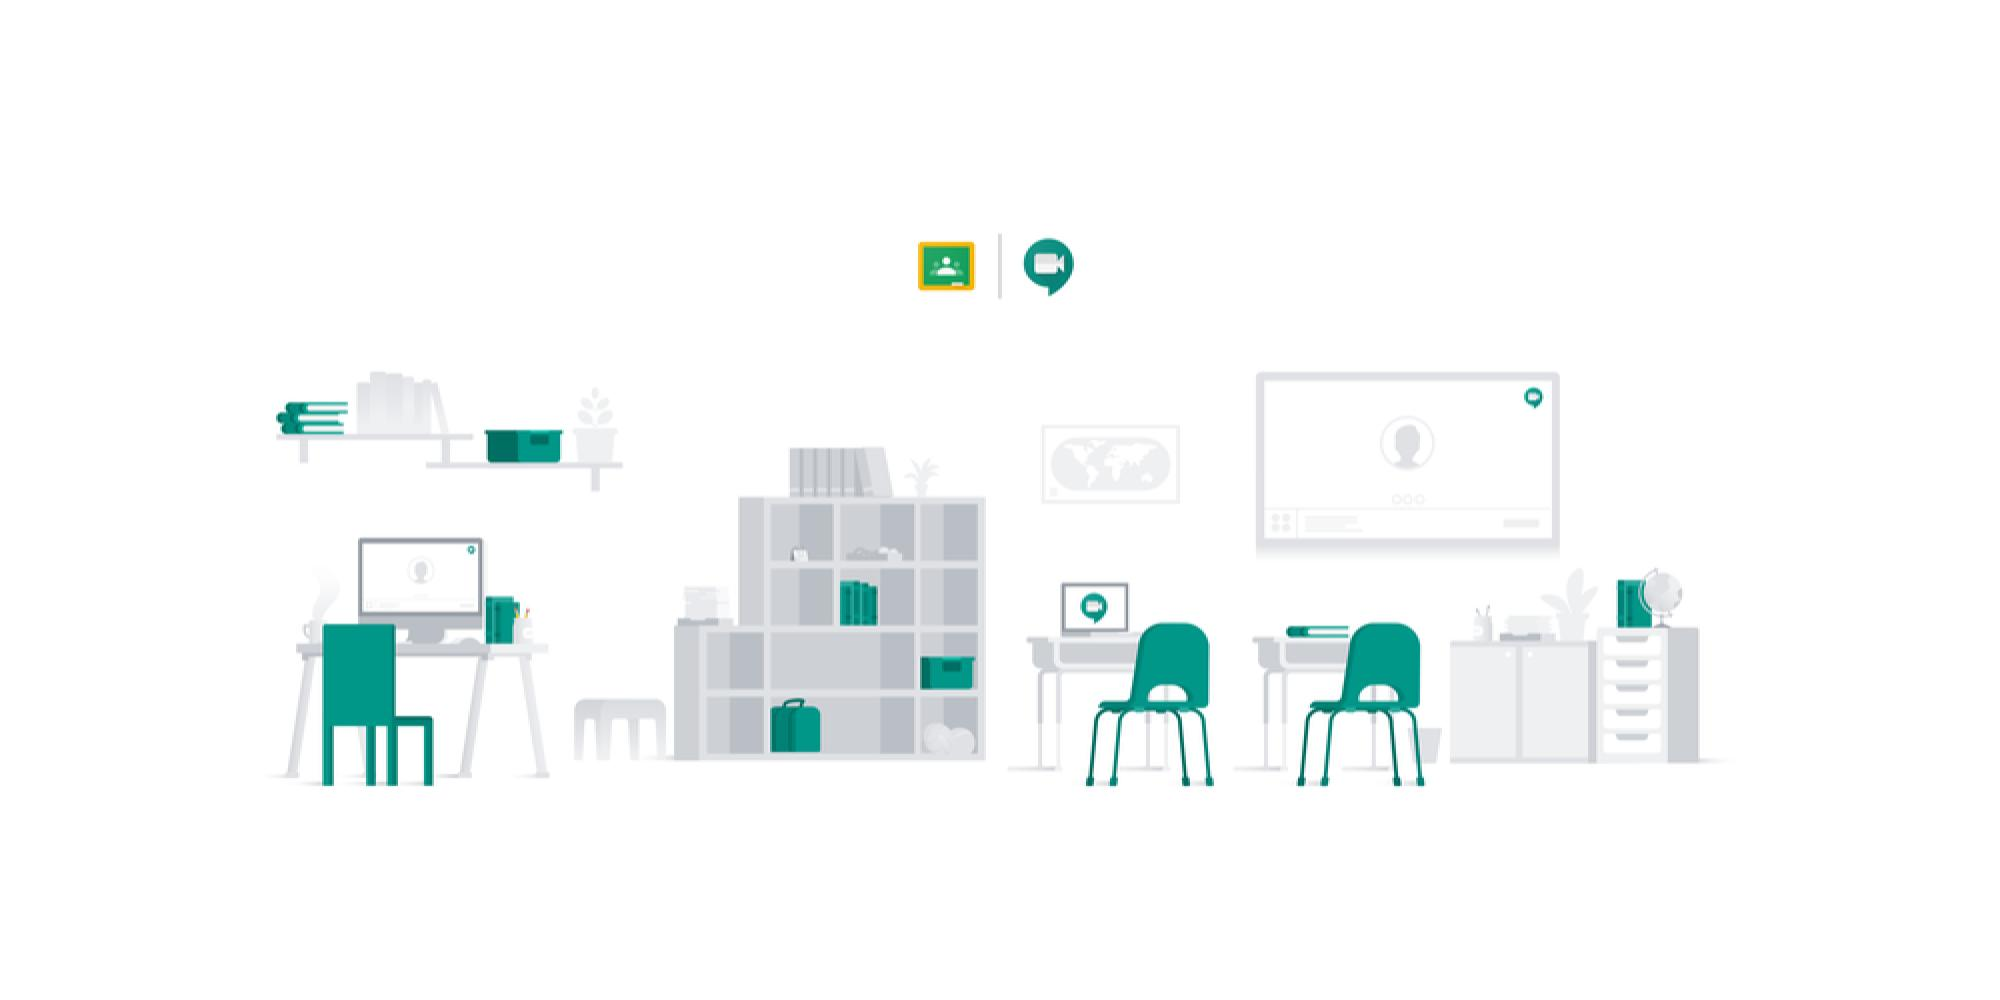 Google Classroom adds Meet integration as premium video features extended, usage soars - 9to5Google